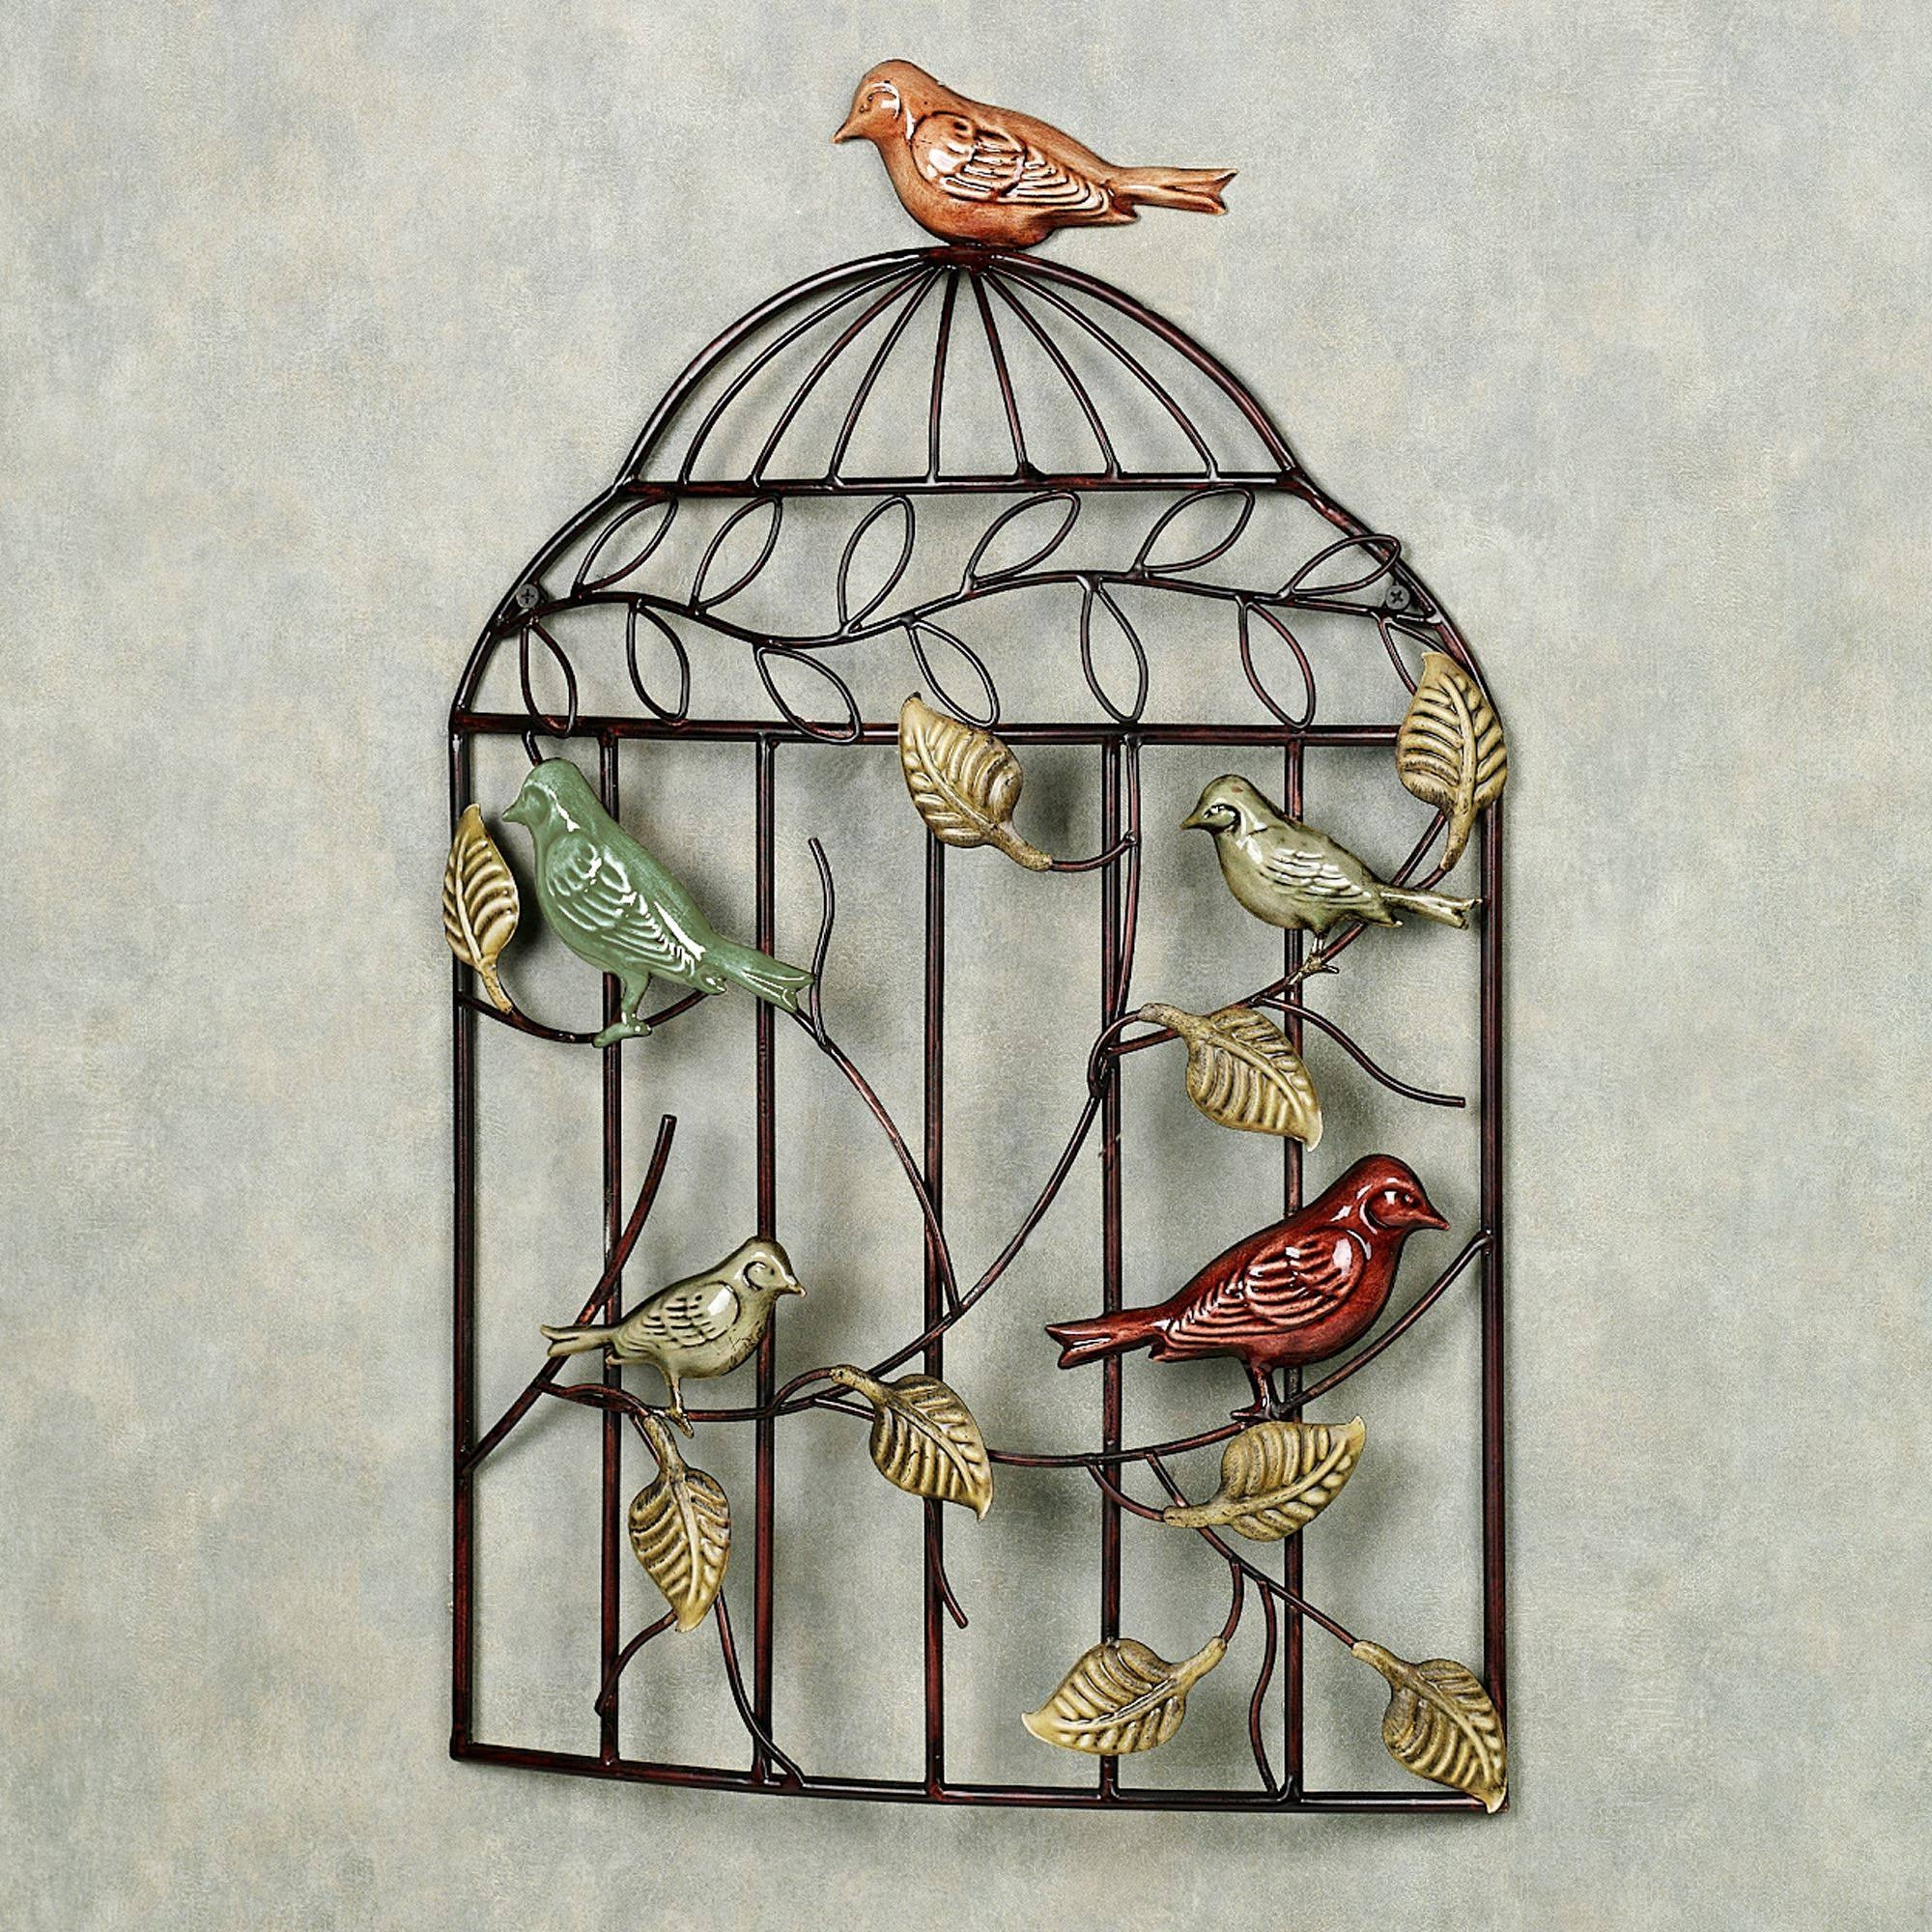 Bird Sanctuary Cage Metal Wall Art Inside 2017 Birds Metal Wall Art (View 13 of 20)